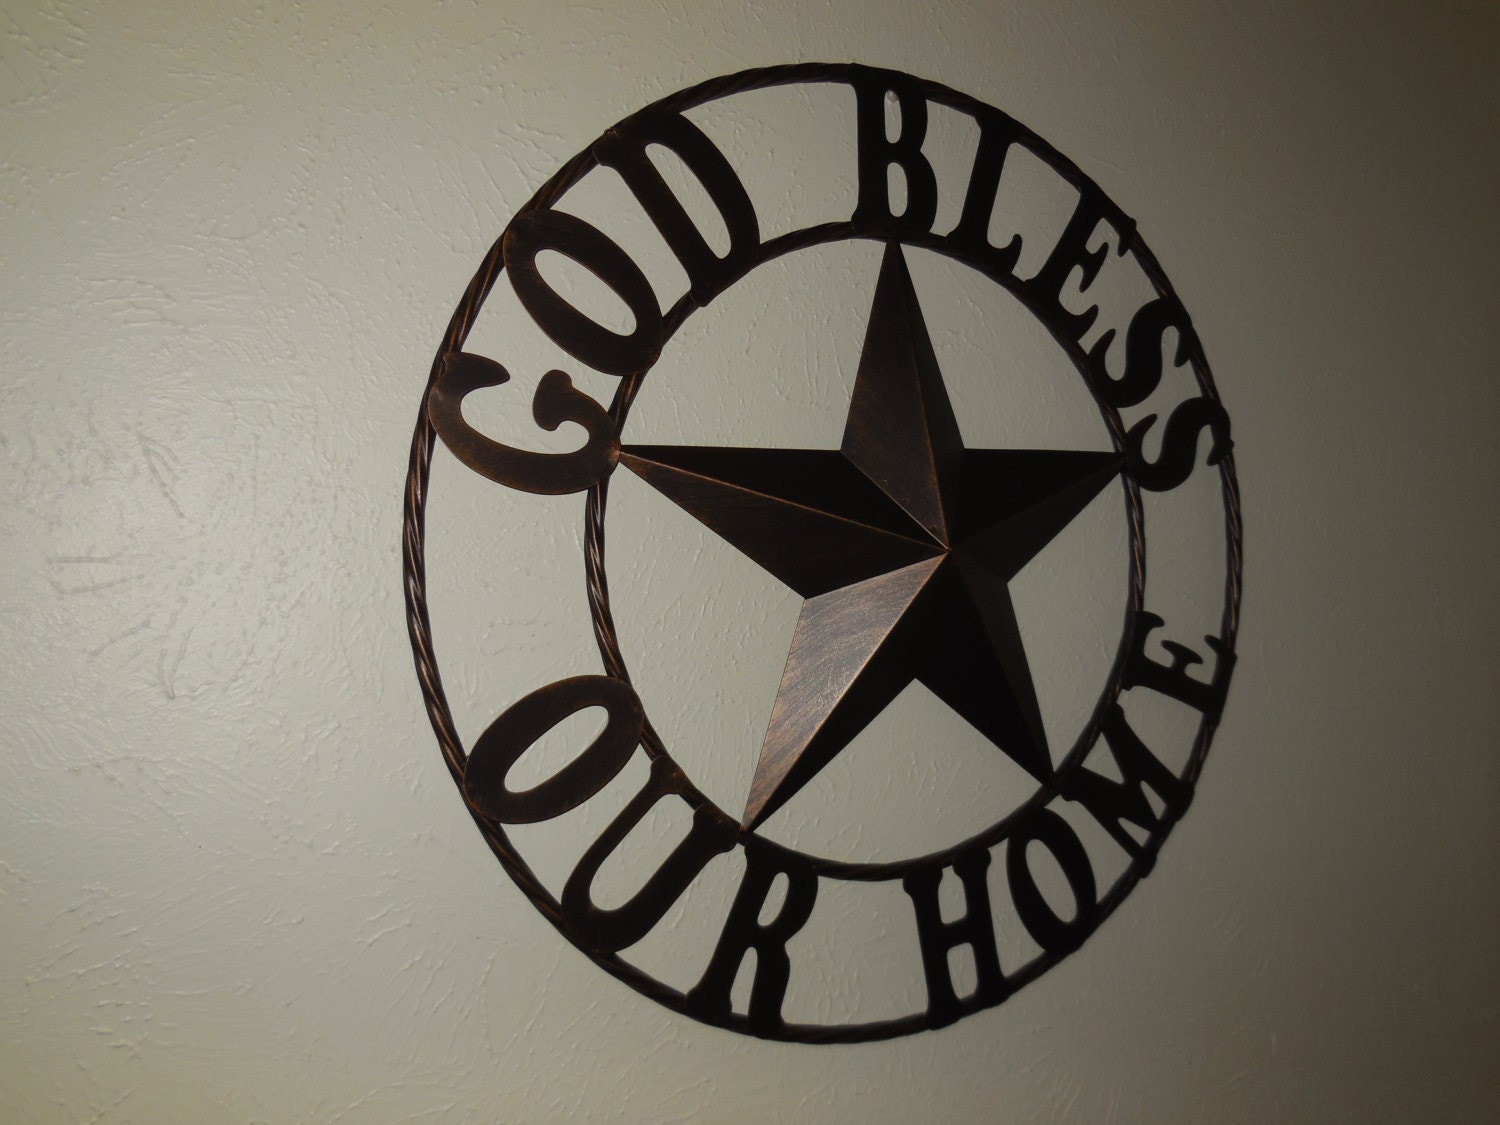 Star Wall Decor Ideas: 24 GOD BLESS OUR Home Barn Metal Star Wall Art Home